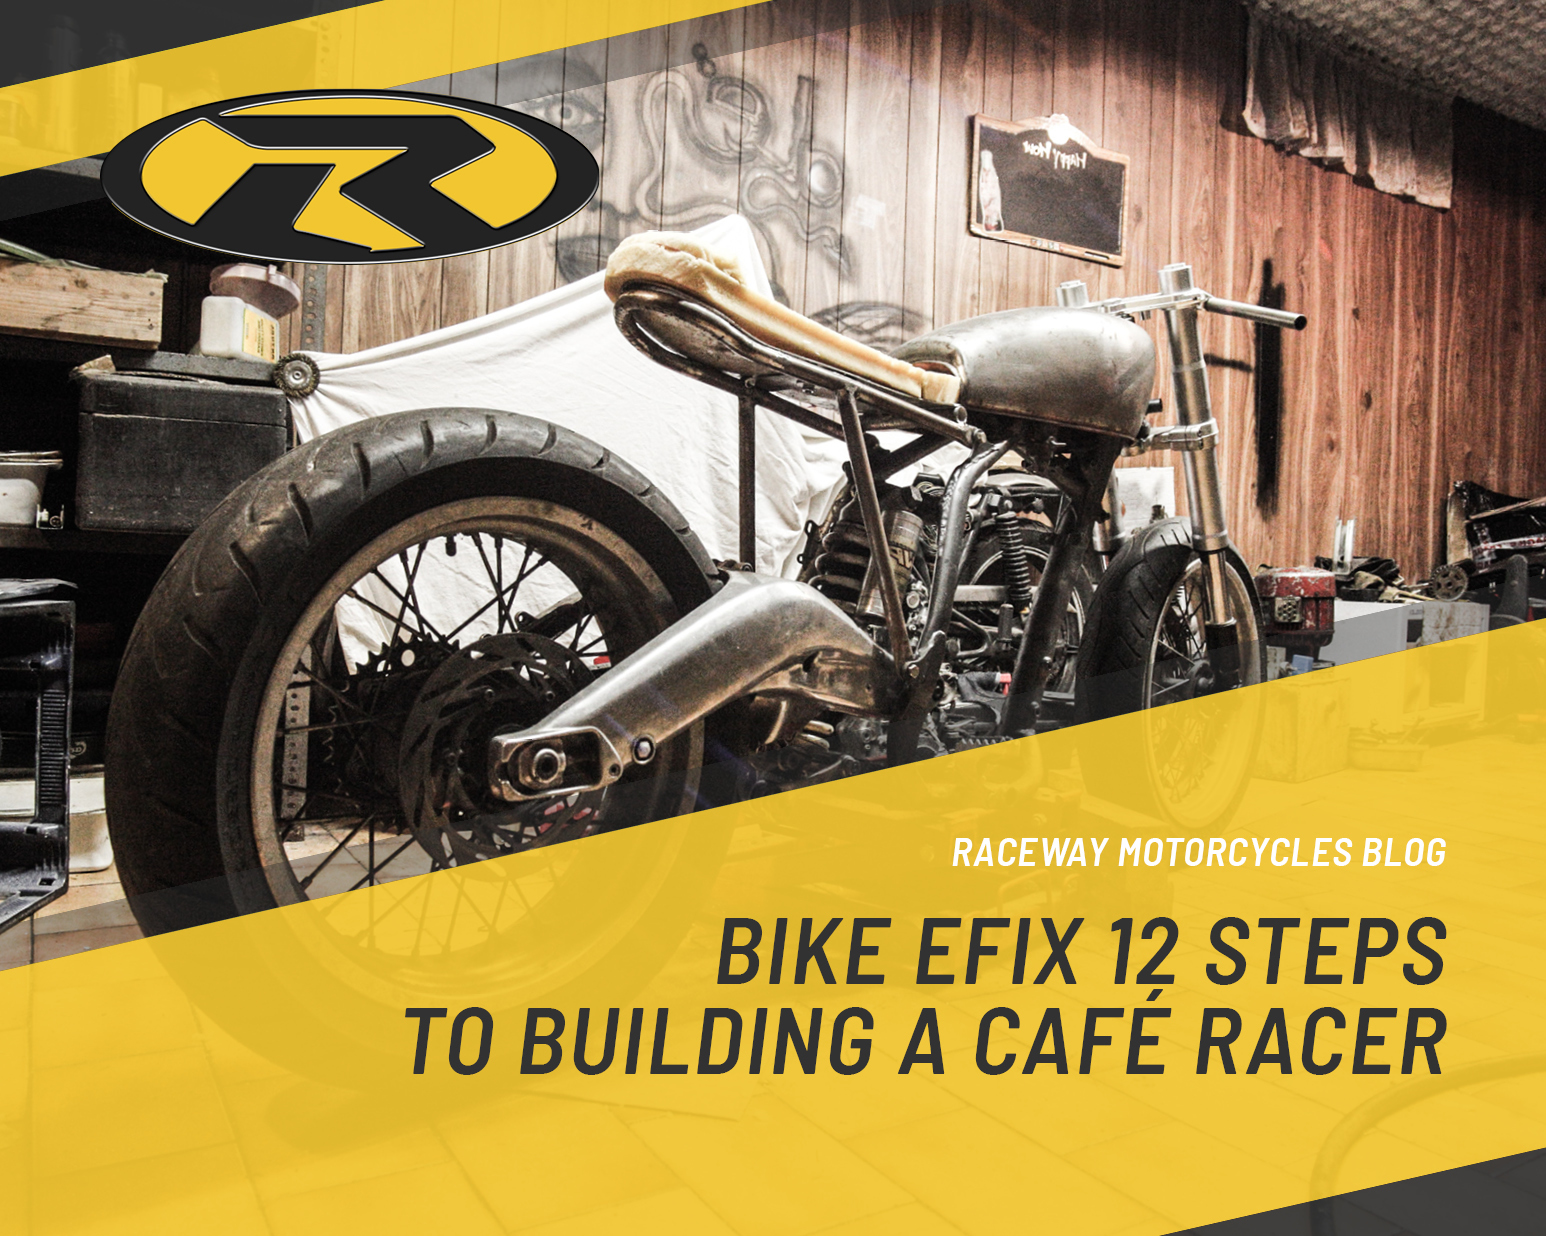 Bike EFIX 12 Steps to Building a Cafe Racer